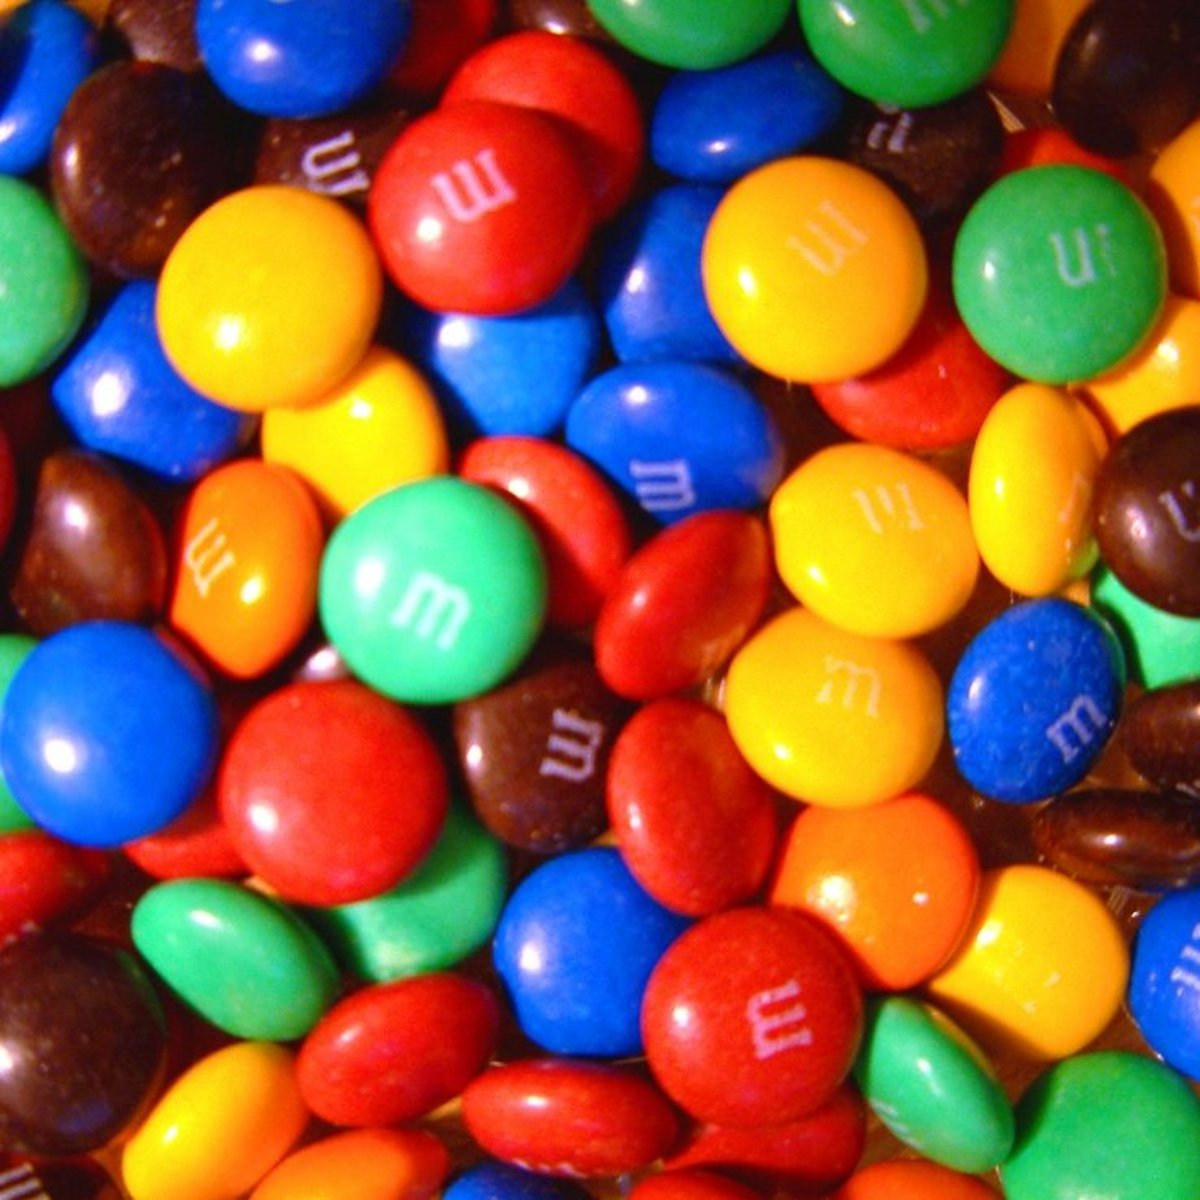 How to Calculate the Number of M&M's in a Container